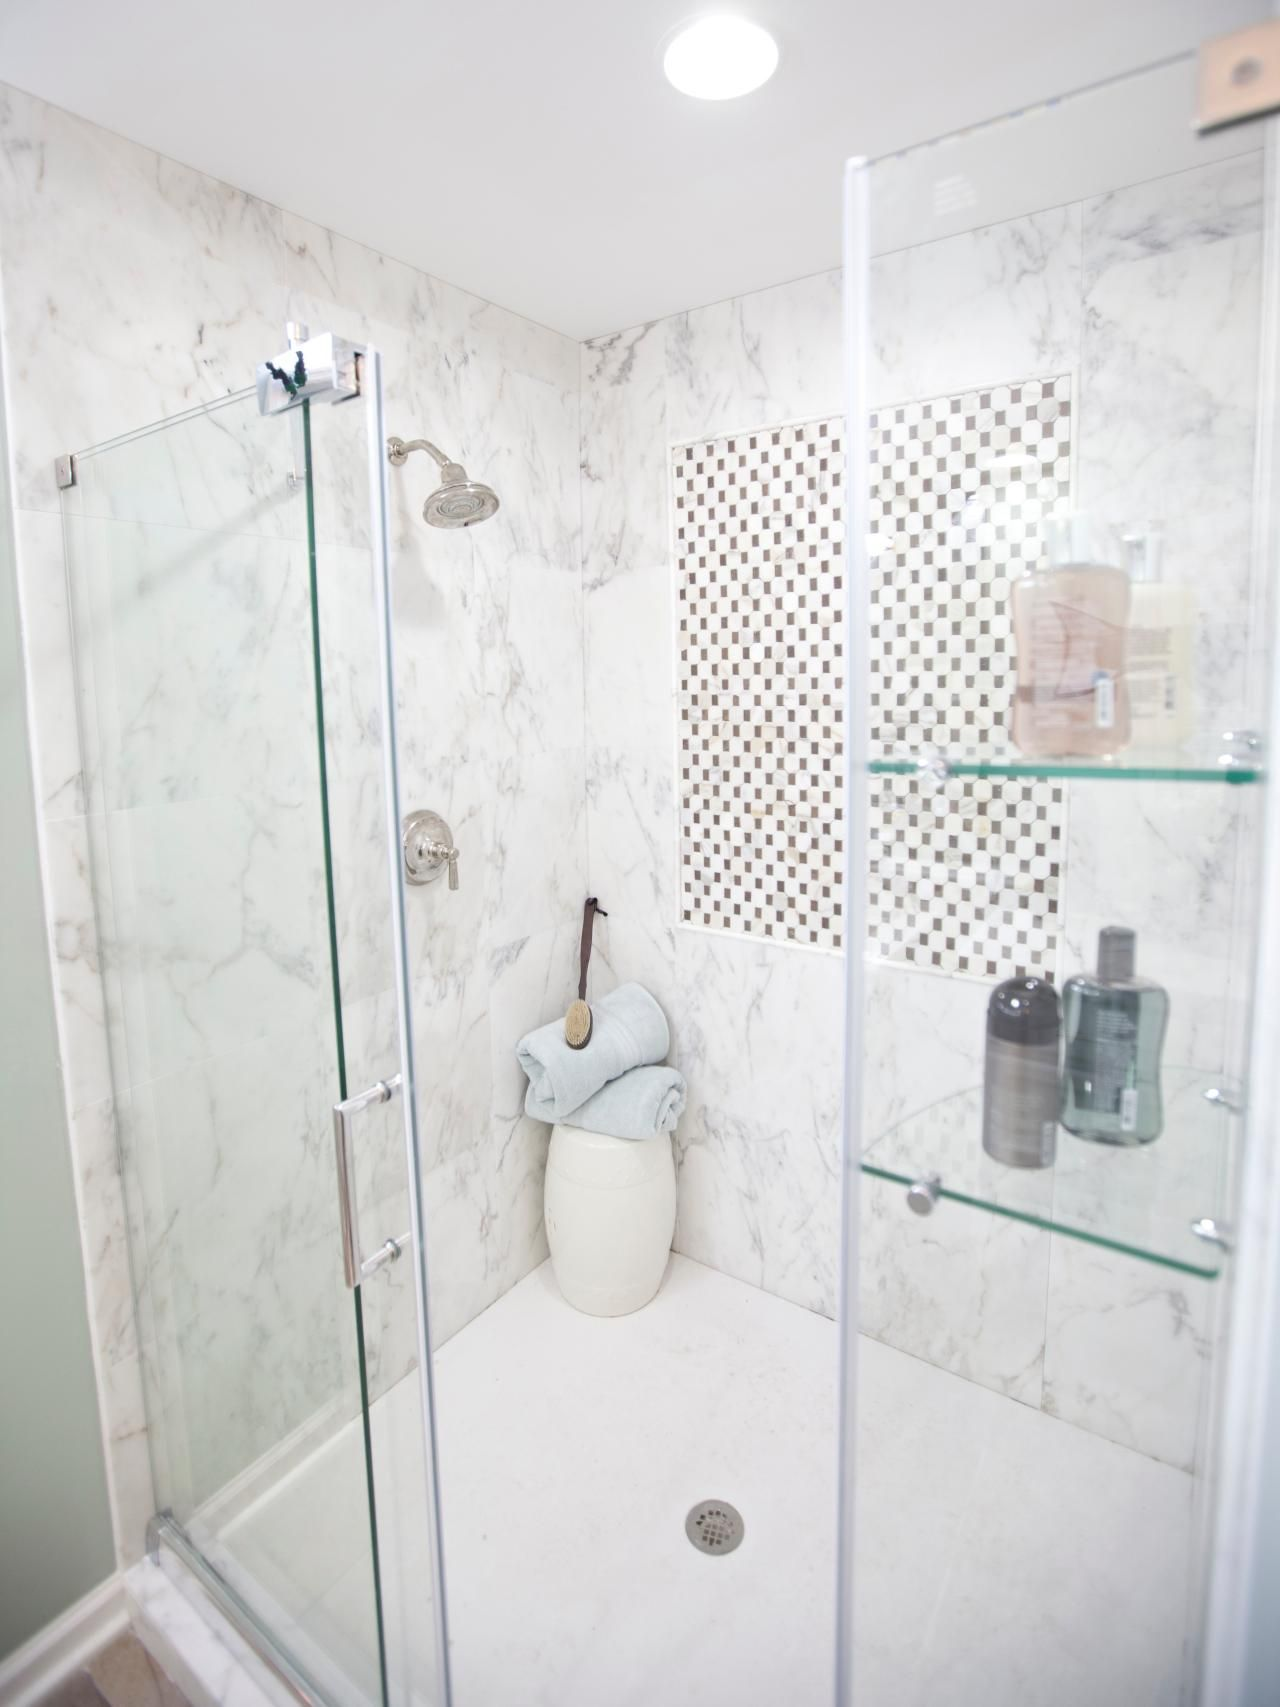 6 Bathroom Shower Tile Ideas | Marble wall, Clean shower and White tiles